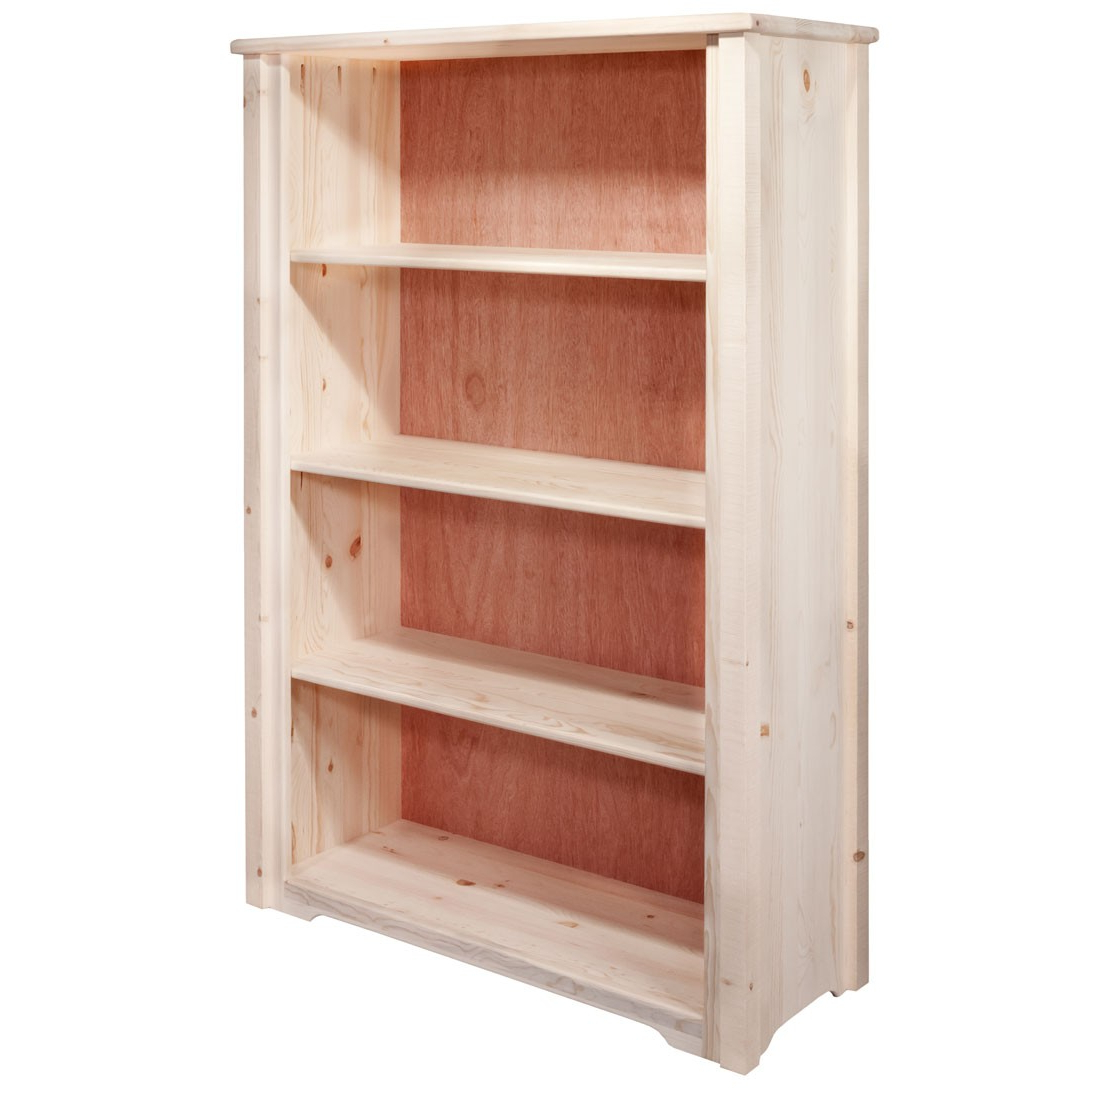 Meadows Square Cut Standard Bookshelf W/adjustable Shelves Within Famous Standard Bookcases (View 6 of 20)